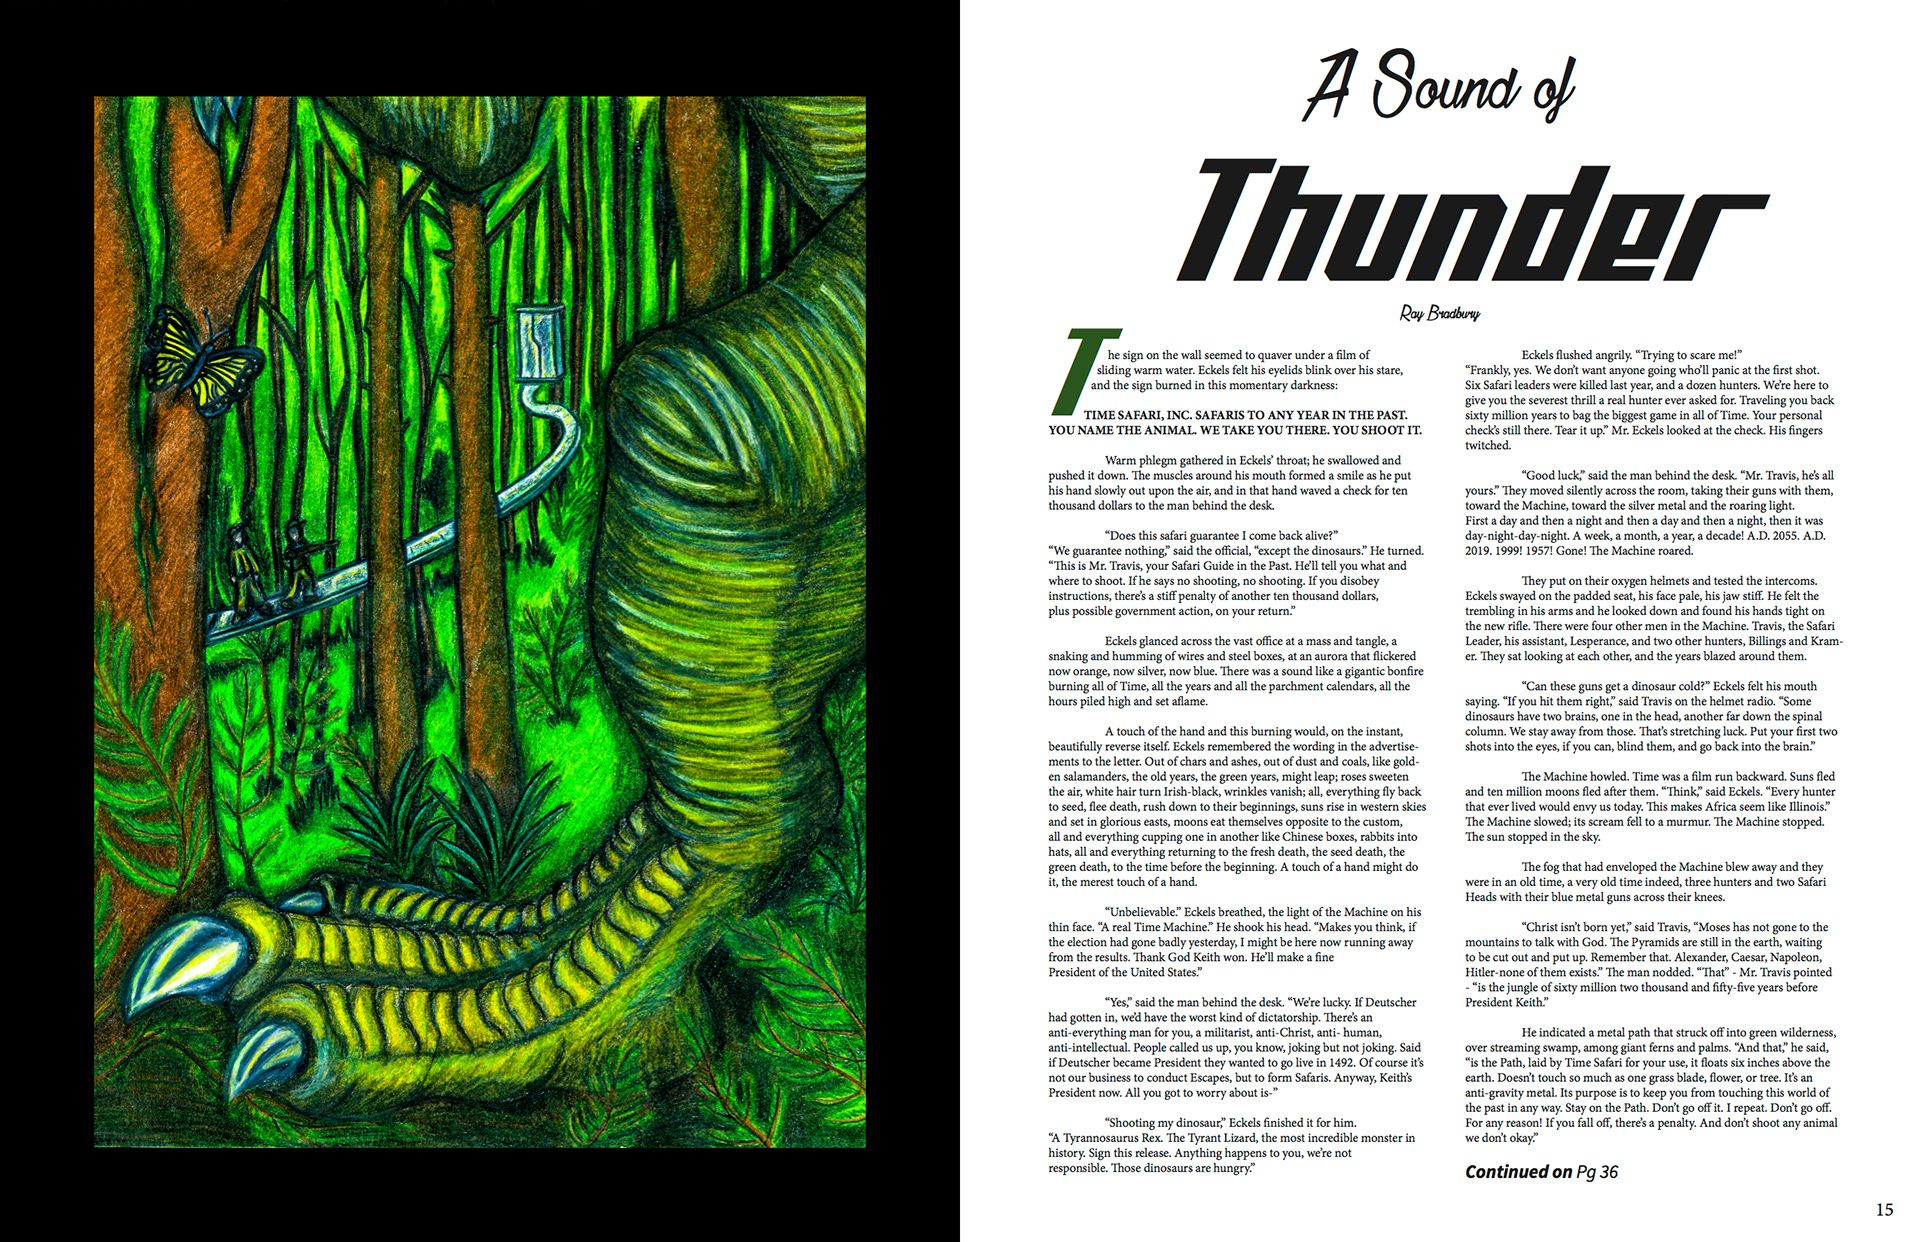 This Is An Illustration For A Sound Of Thunder Short